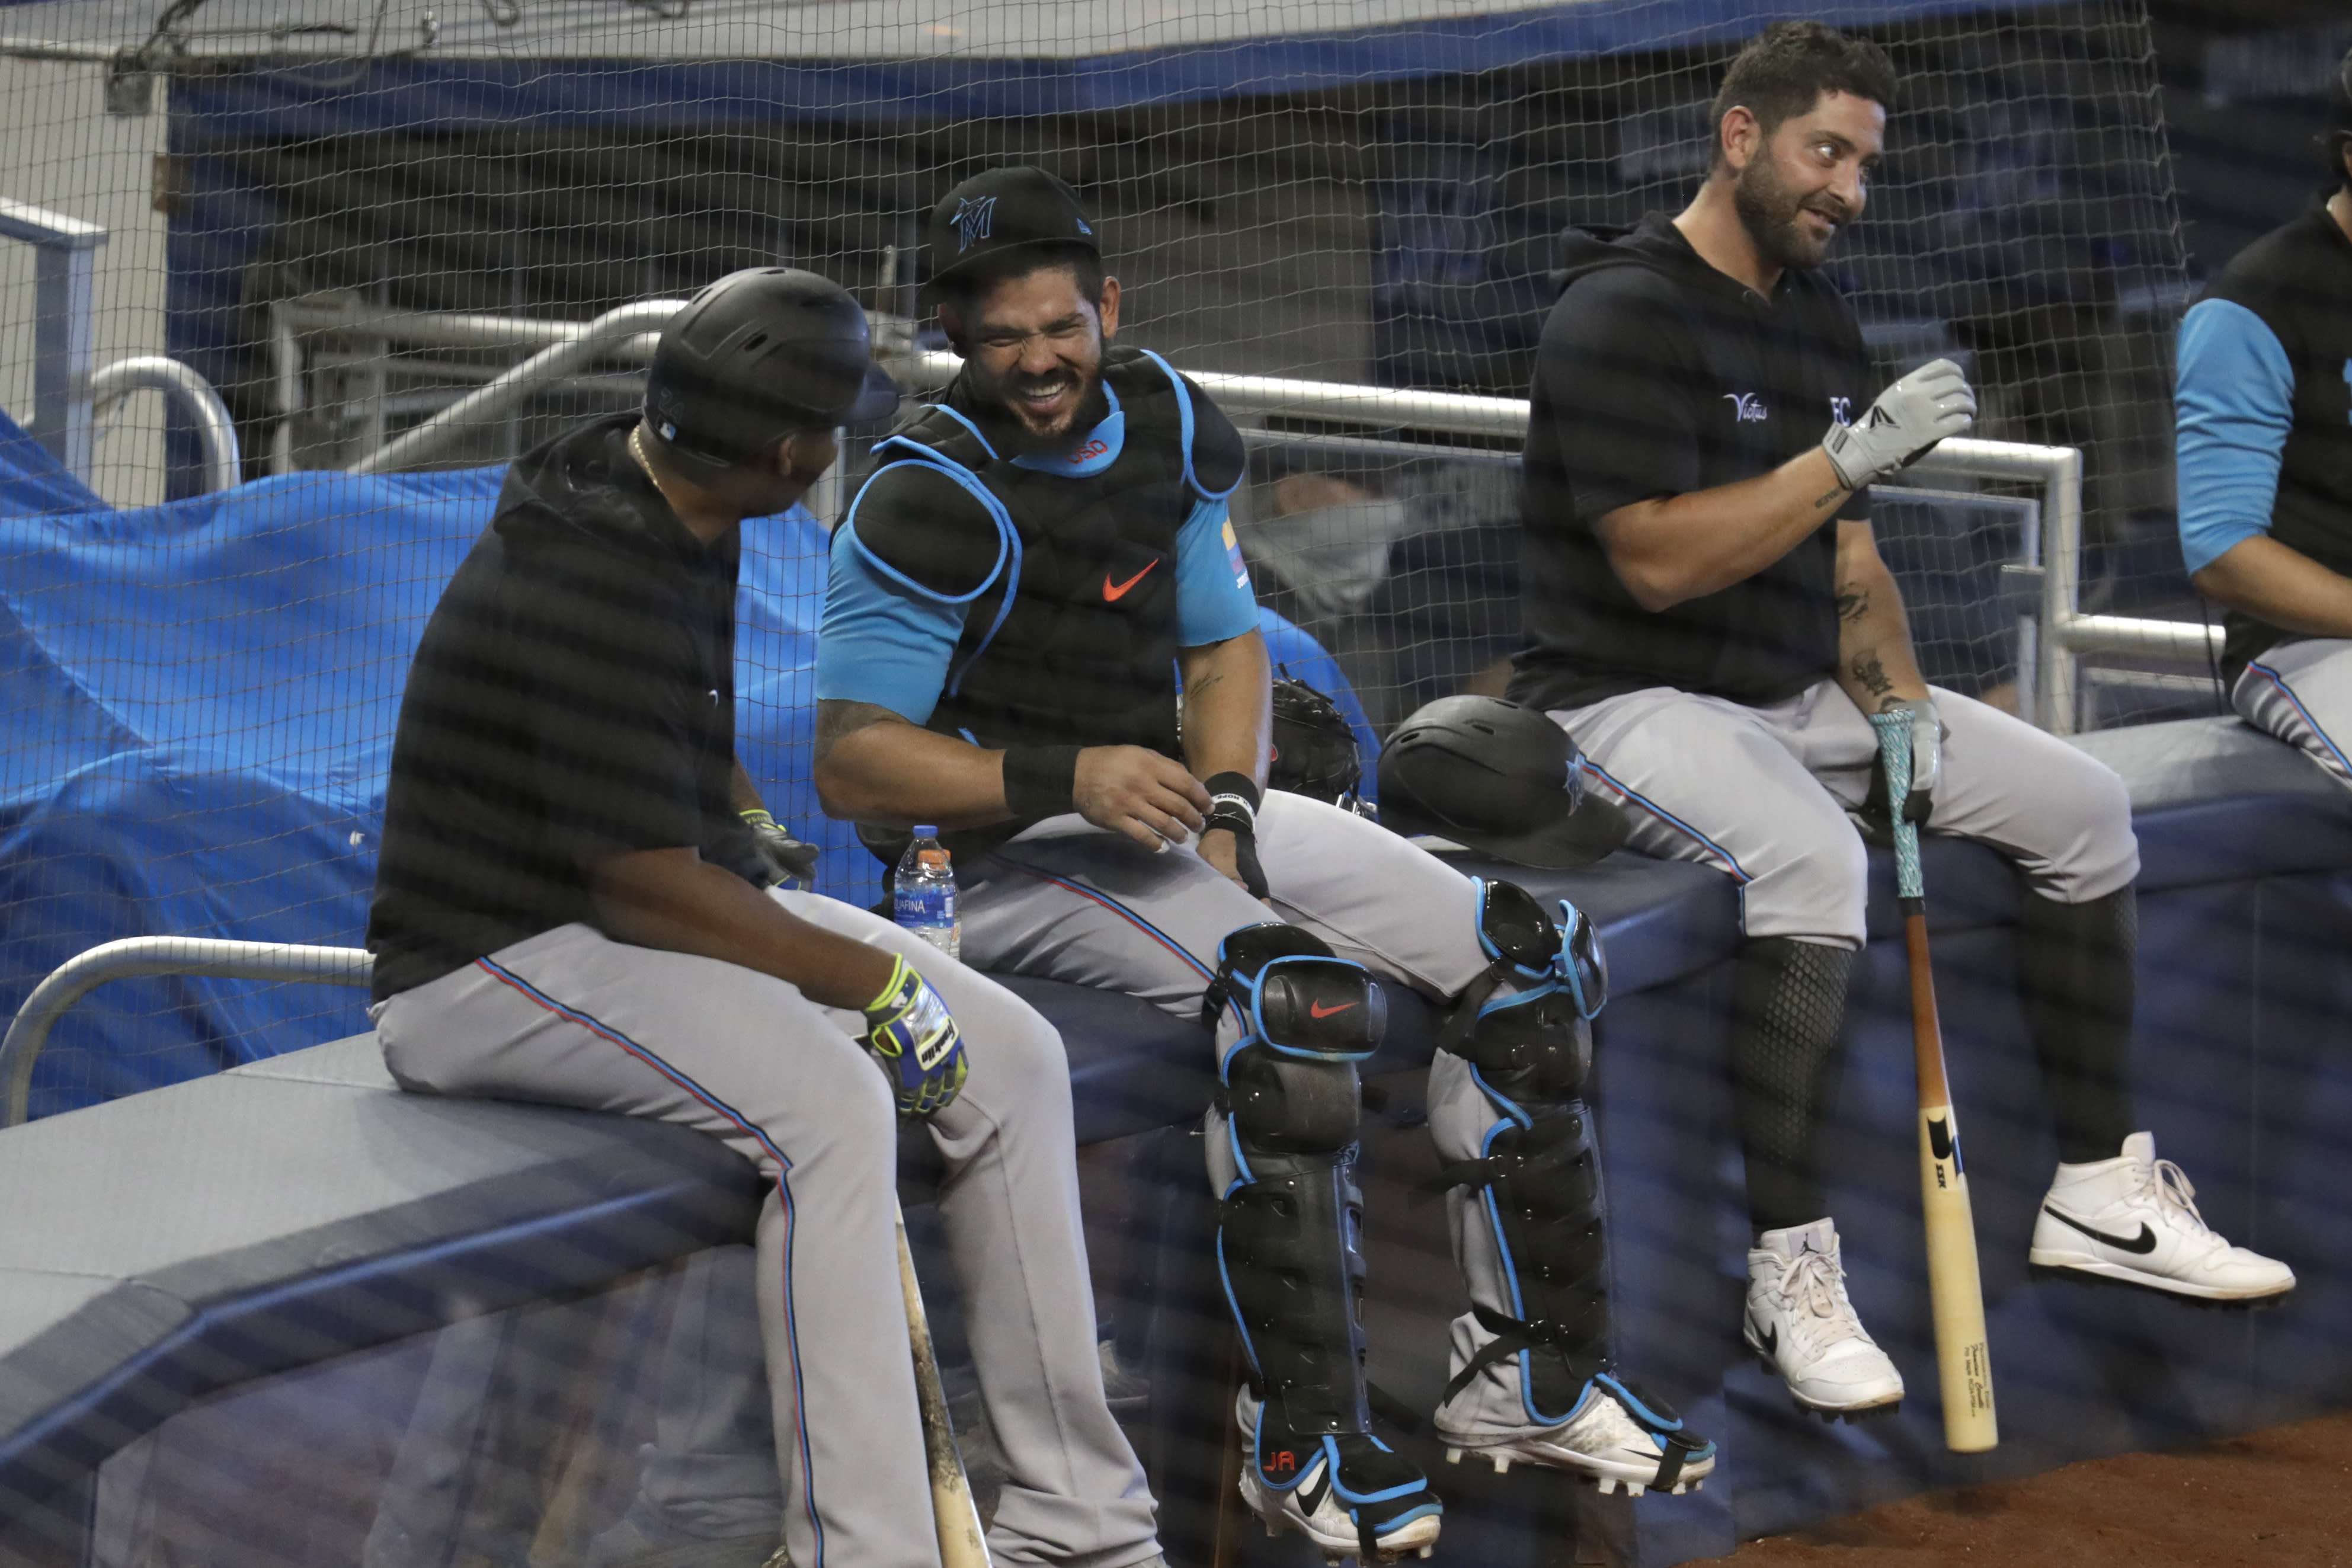 Miami Marlins catchers Jorge Alfaro, center, and Francisco Cervelli, right, pause during baseball practice at Marlins Park, Wednesday, July 8, 2020, in Miami. (AP Photo/Lynne Sladky)